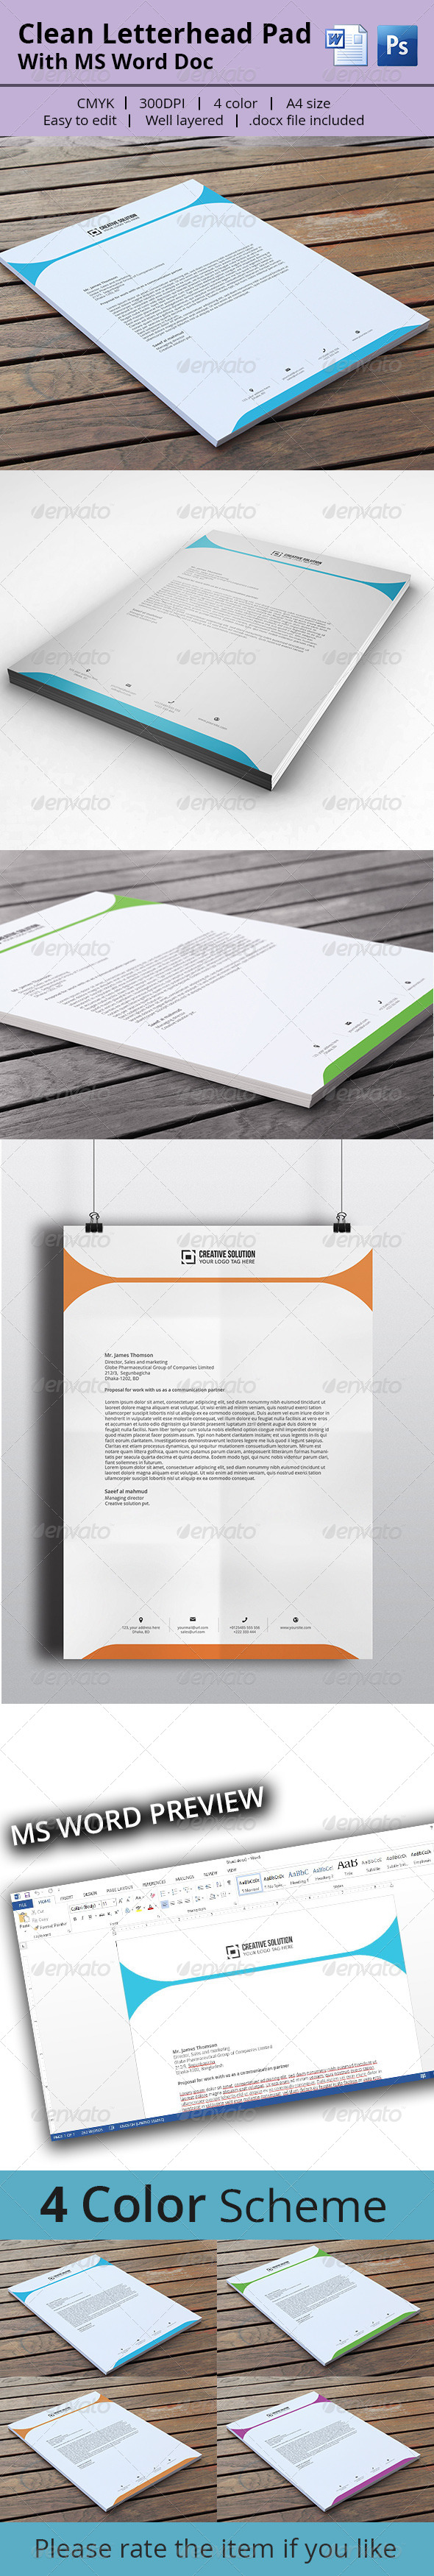 Letterhead Pad With MS Word